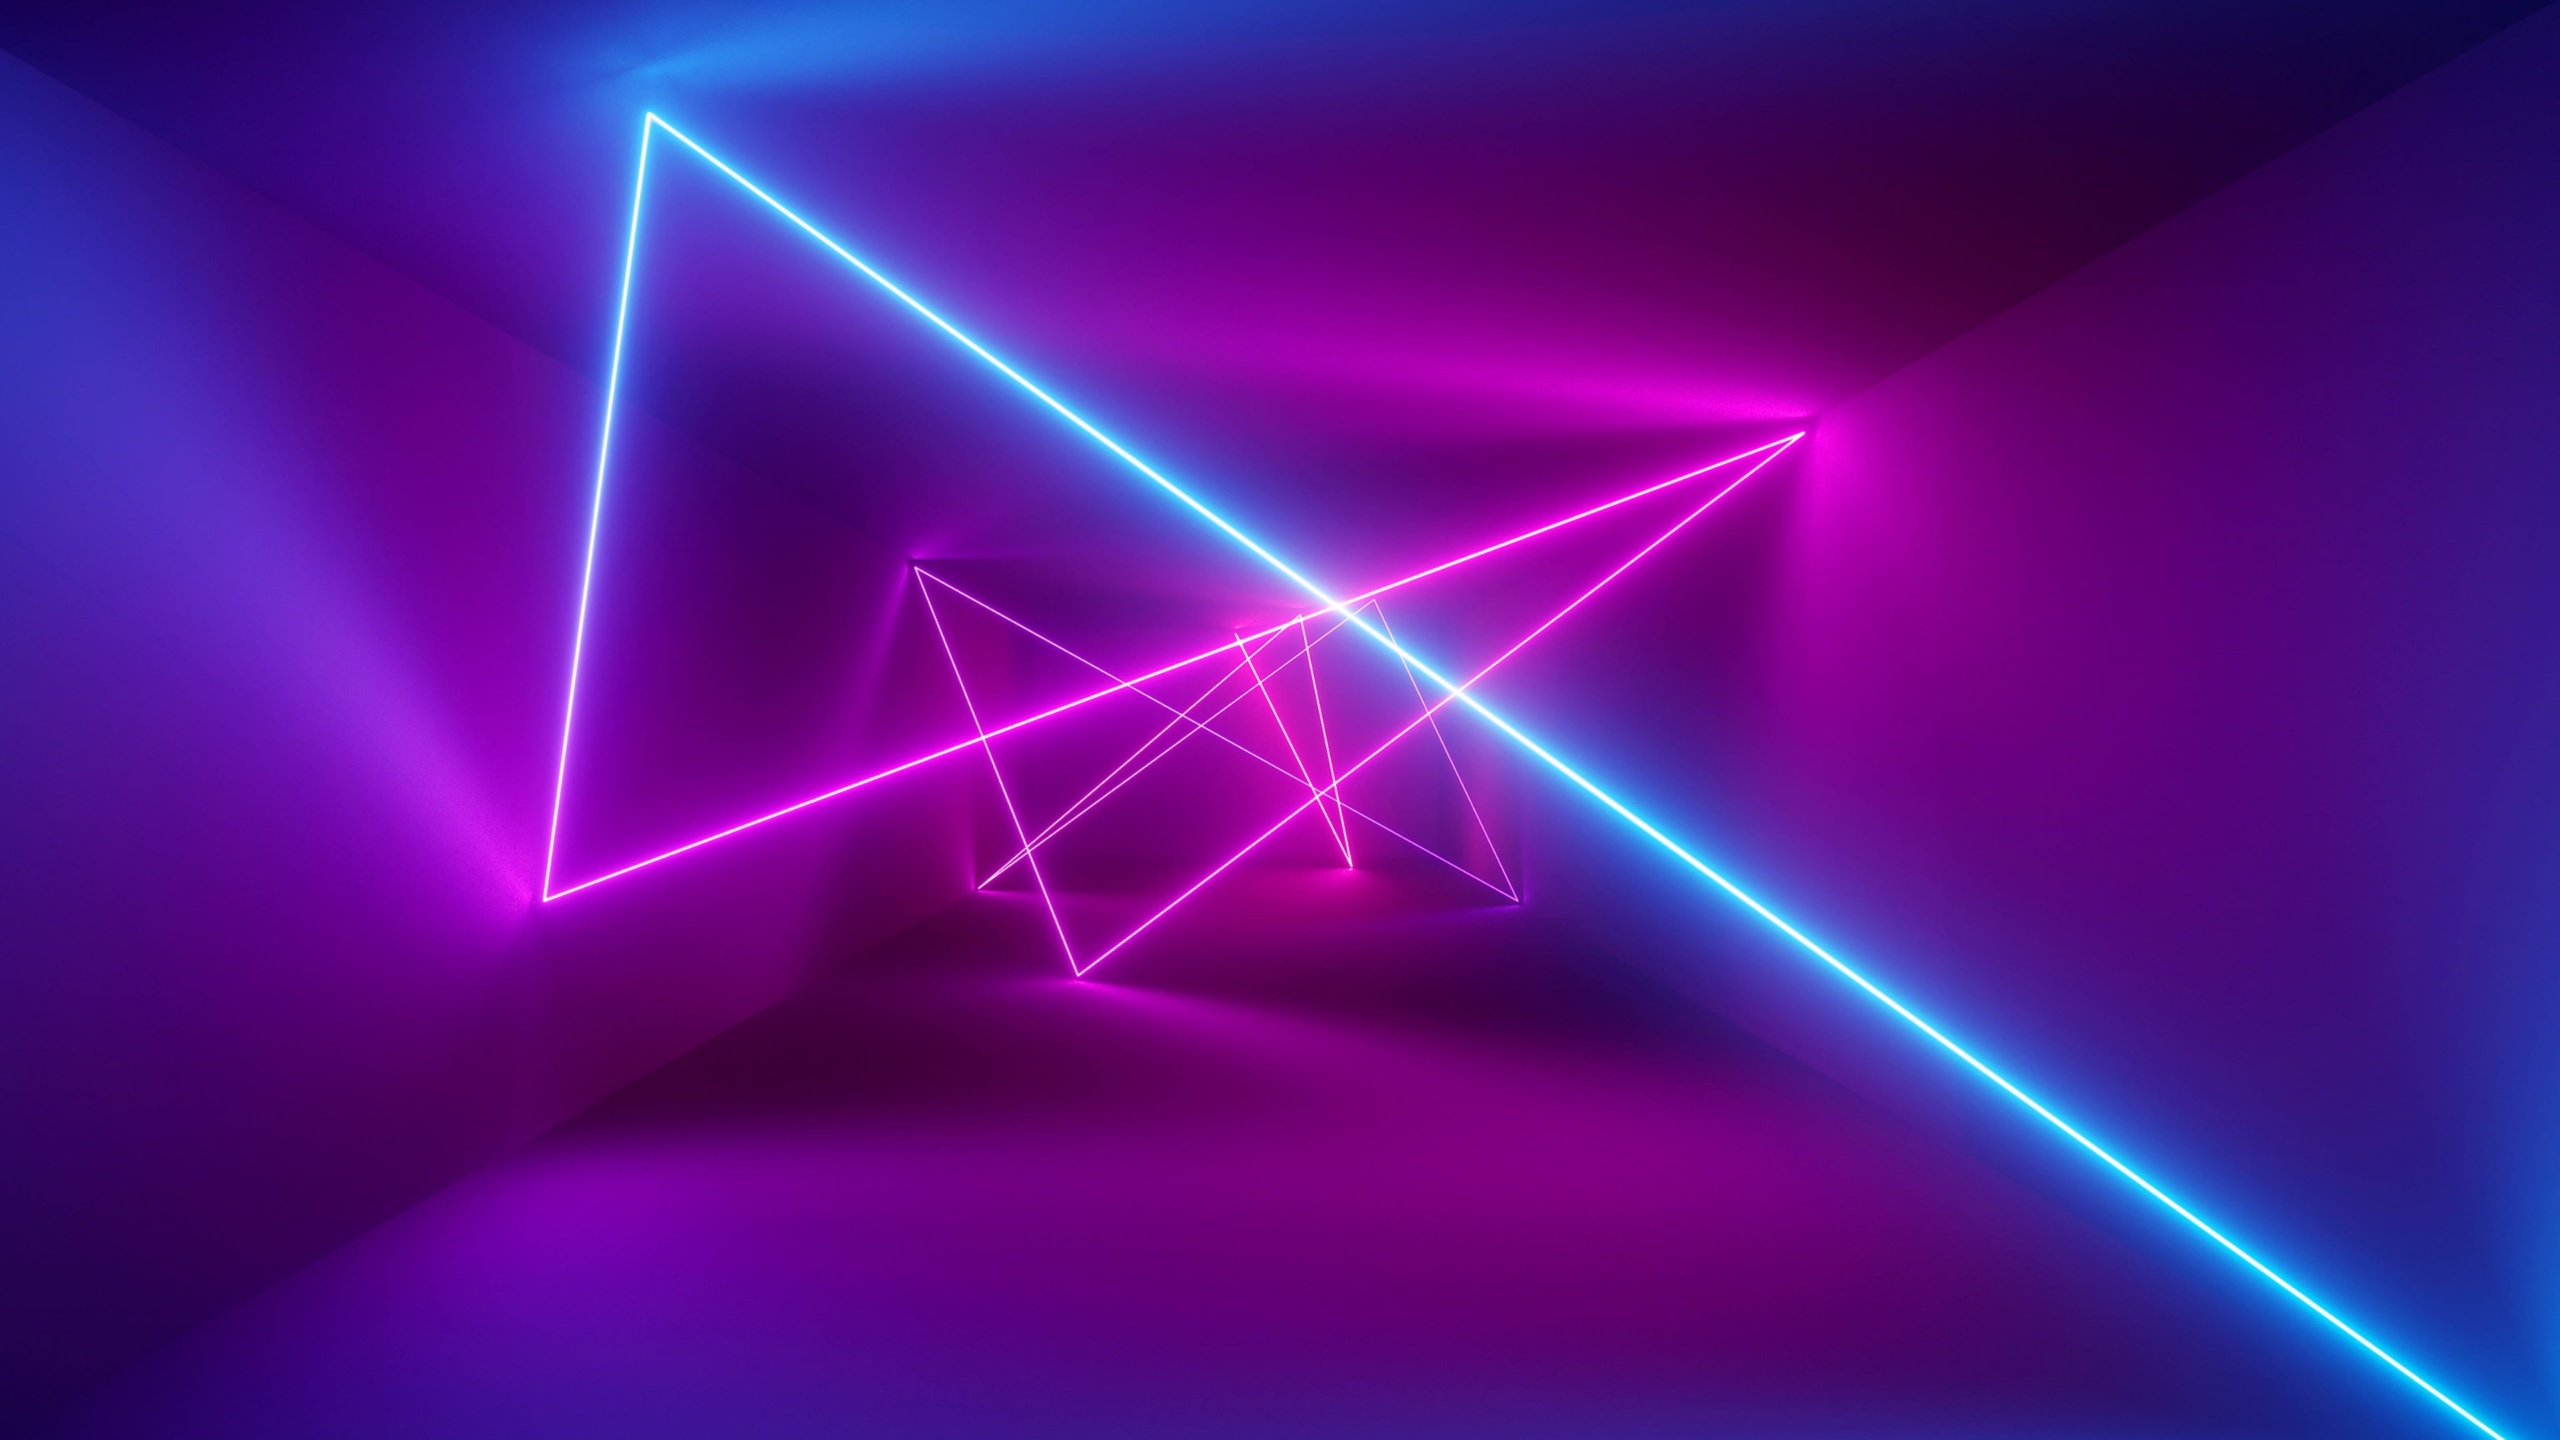 Give Your Walls a New Look With Neon Lights Wallpaper